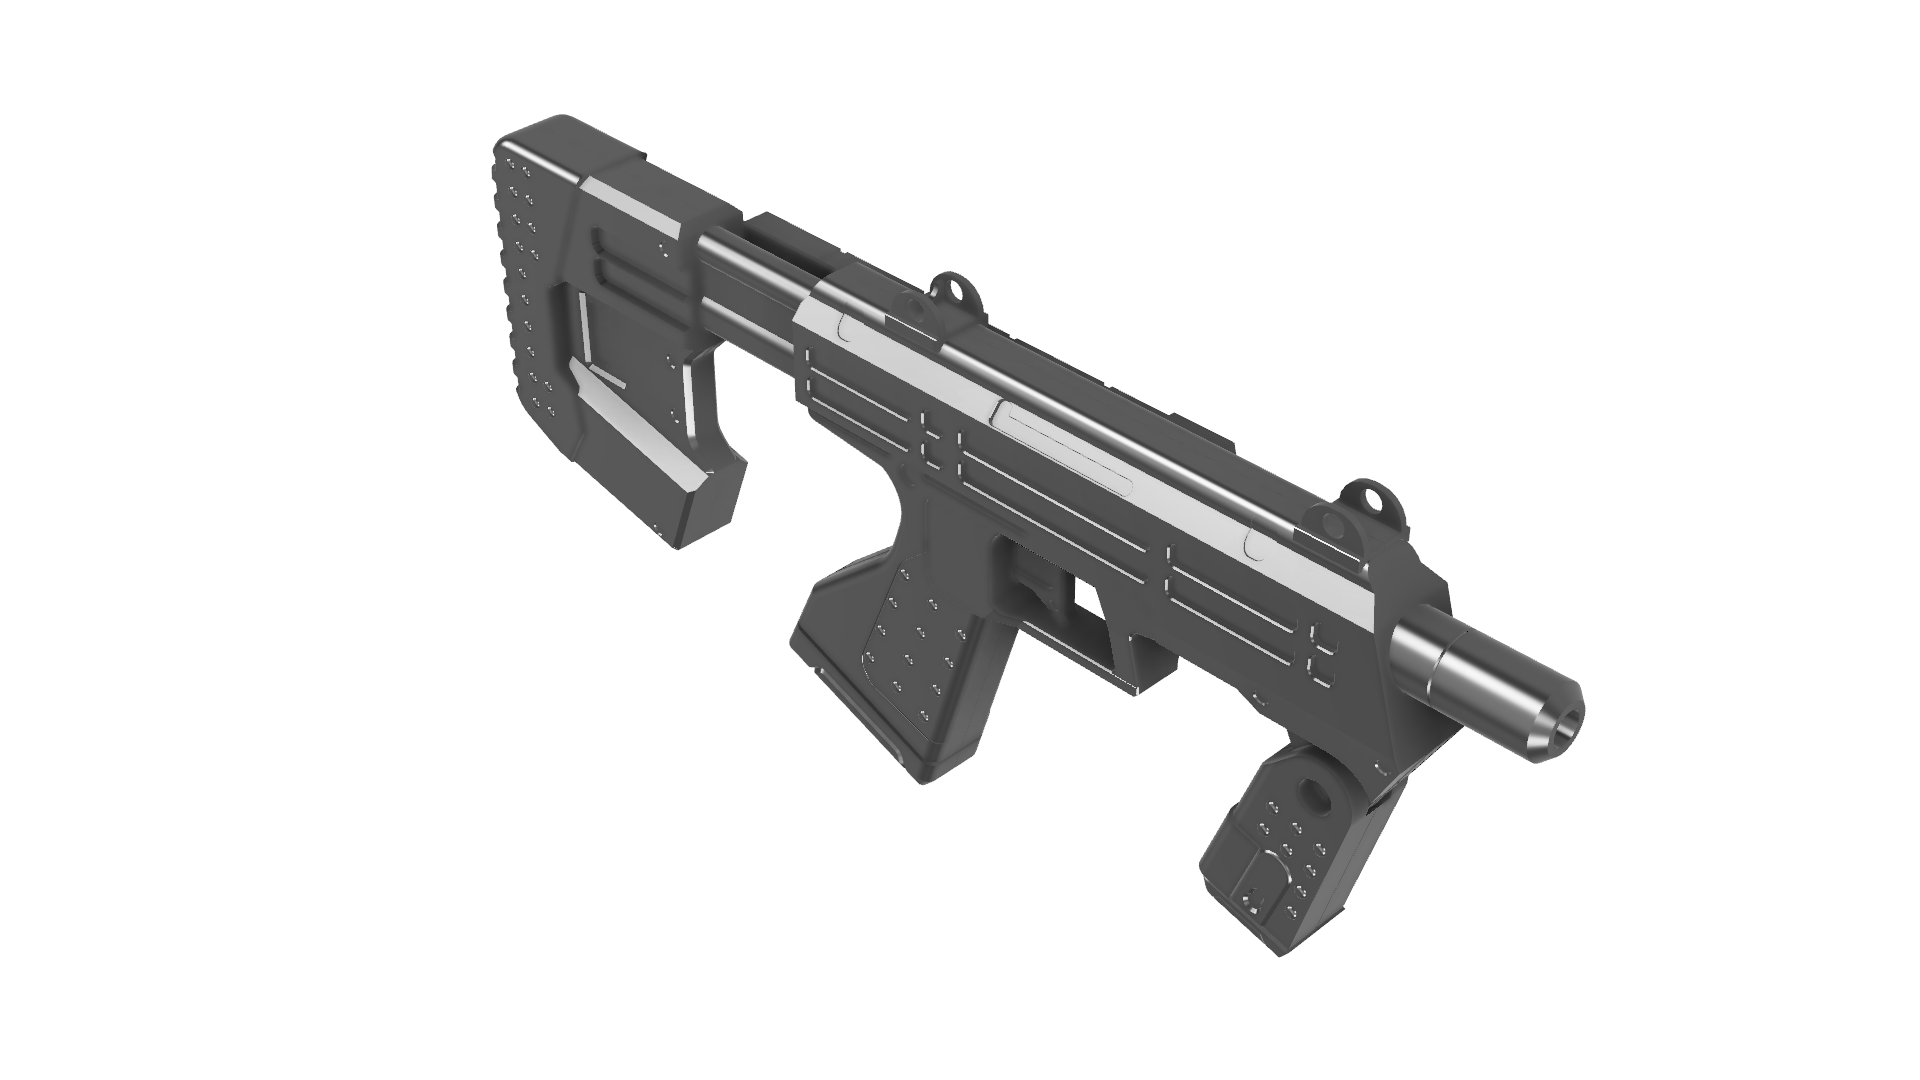 M7 SMG v40 10.png